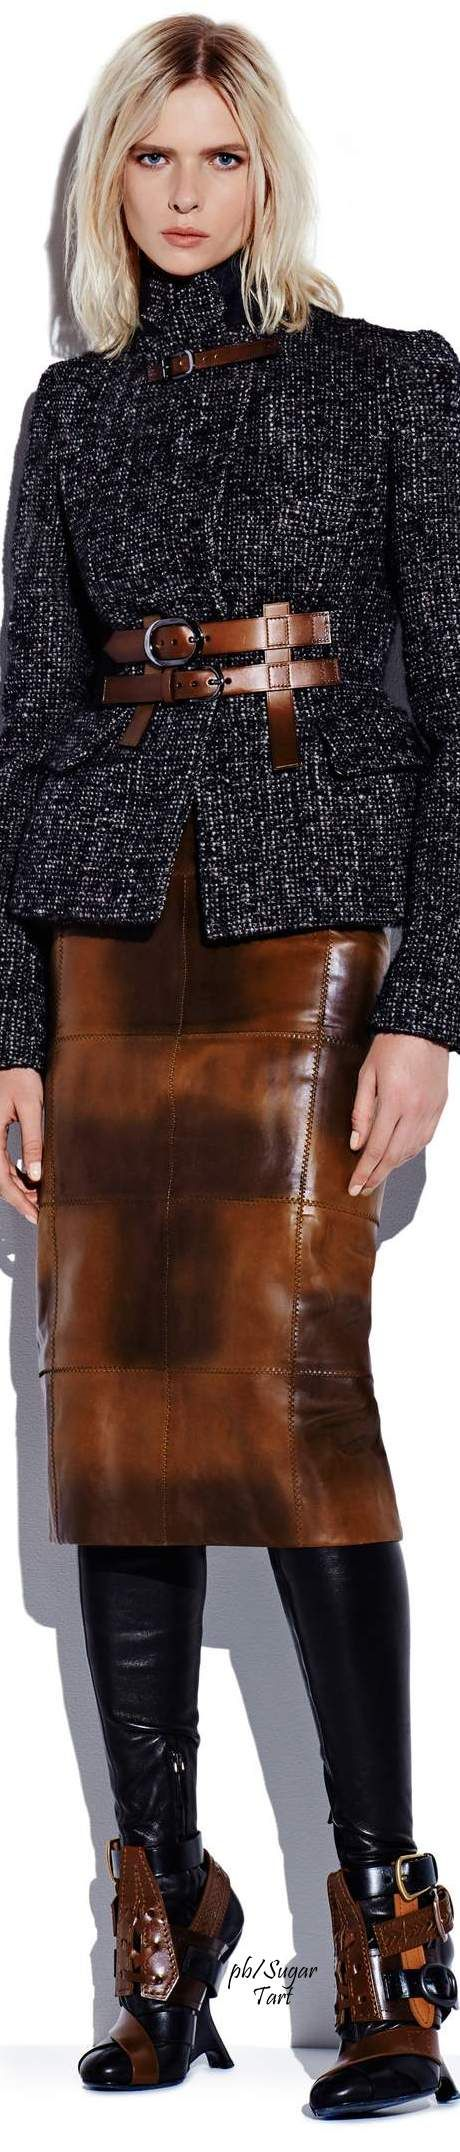 Tom Ford - Fall 2016